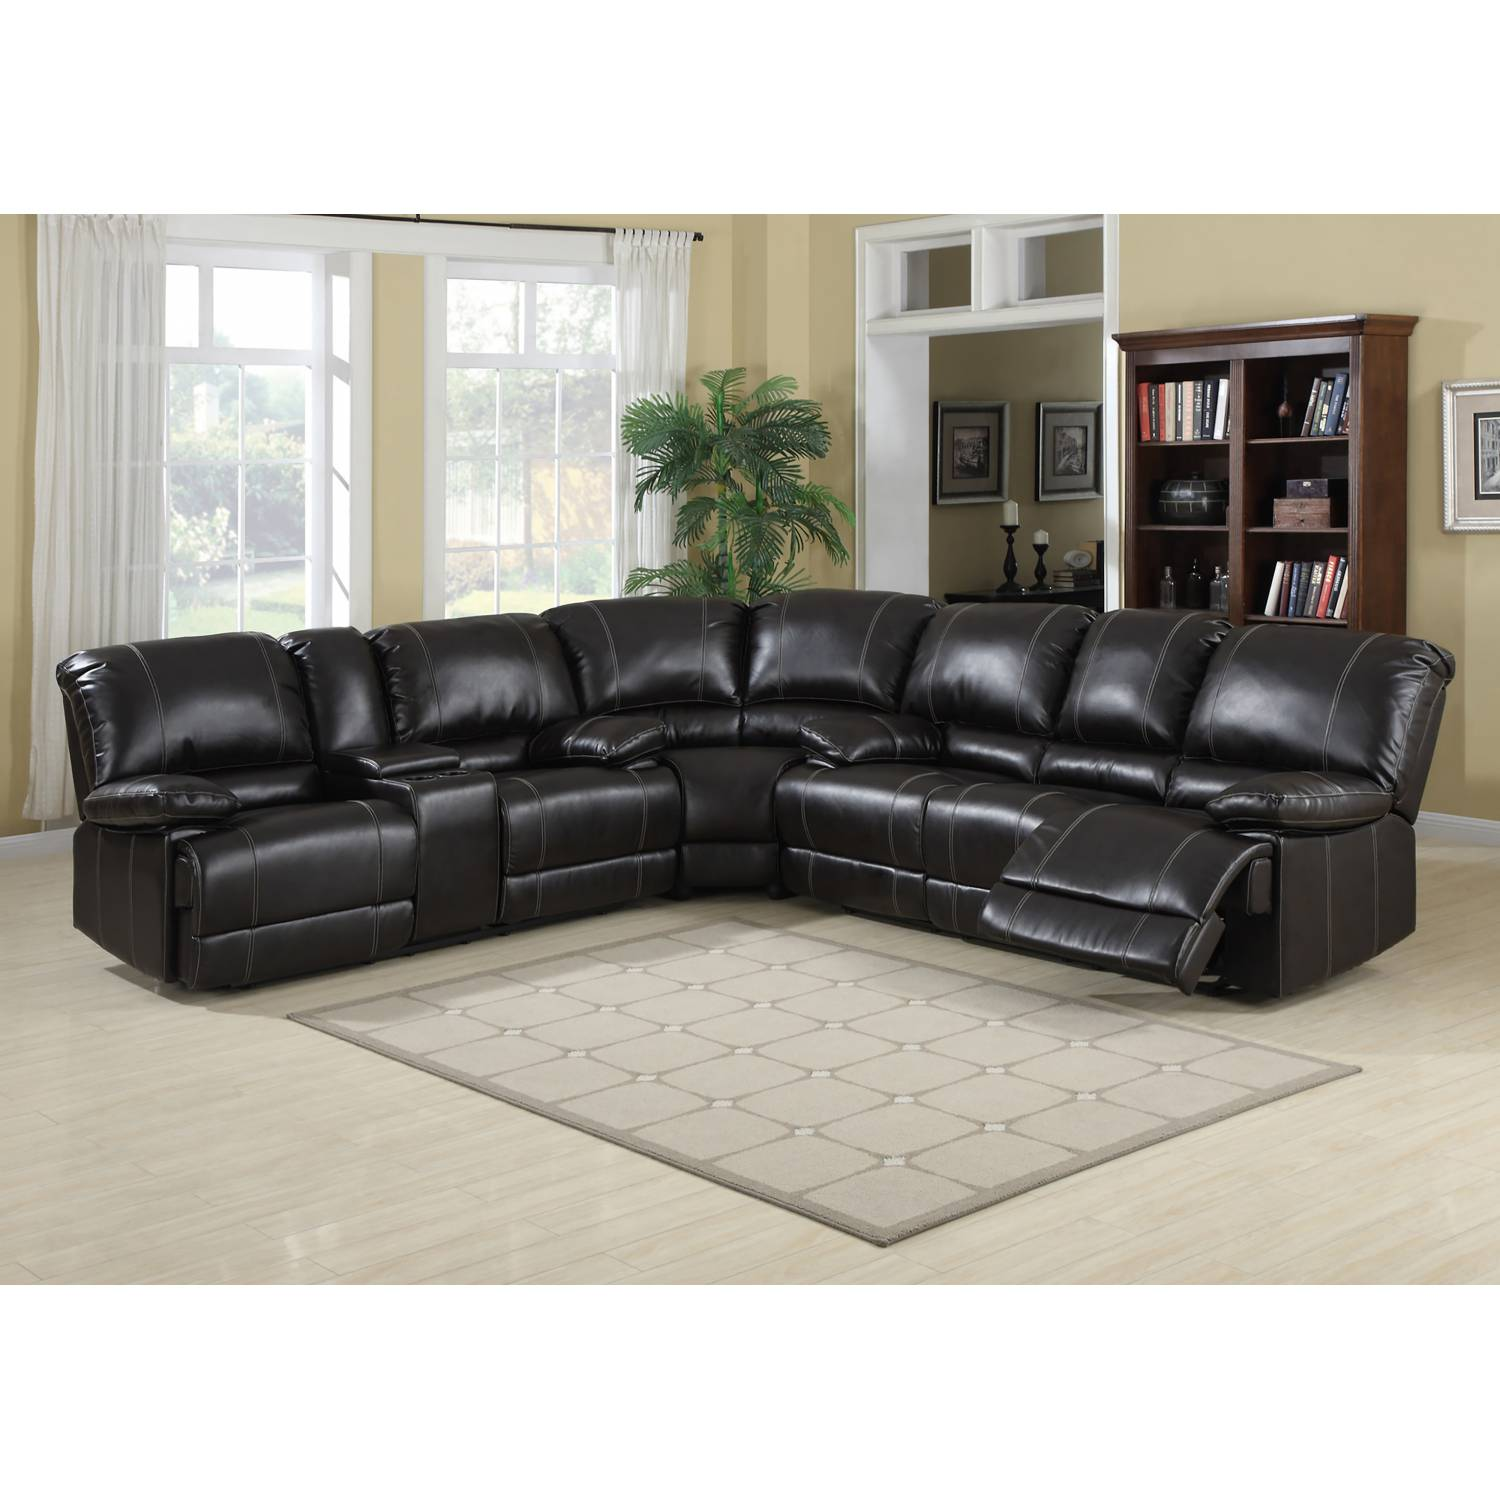 Cool Kevin Cocoa Faux Leather Reclining Loveseat Machost Co Dining Chair Design Ideas Machostcouk